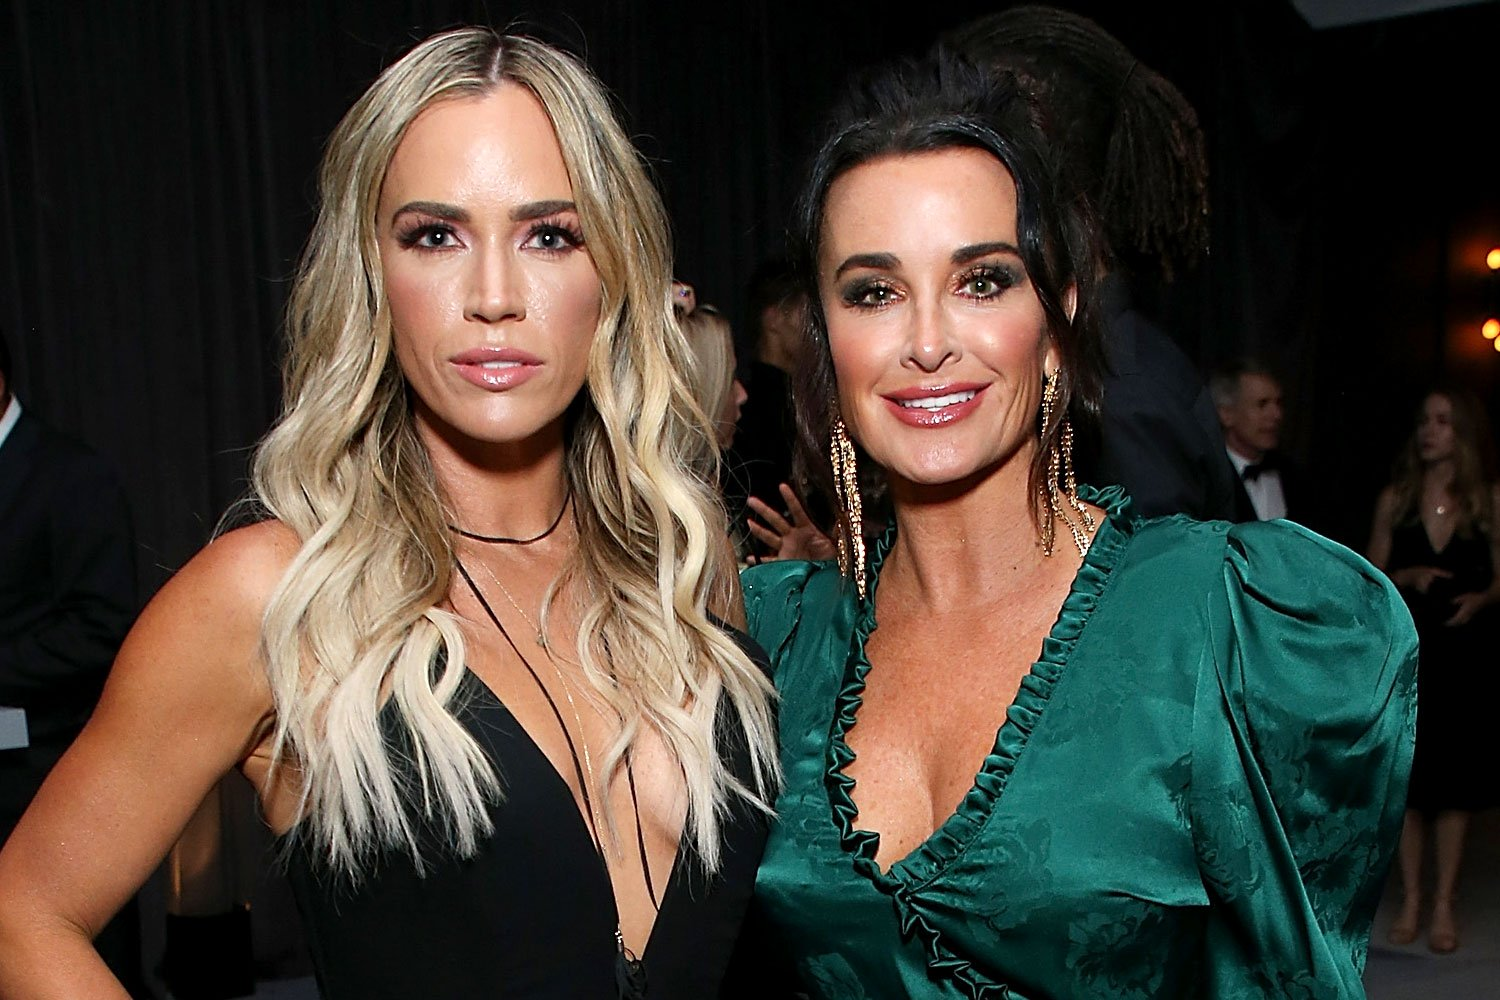 Andy Cohen Hints Teddi Mellencamp And Kyle Richards Are Being Fired From The RHOBH? – Here's Why Fans Are Convinced After Seeing This Pic!